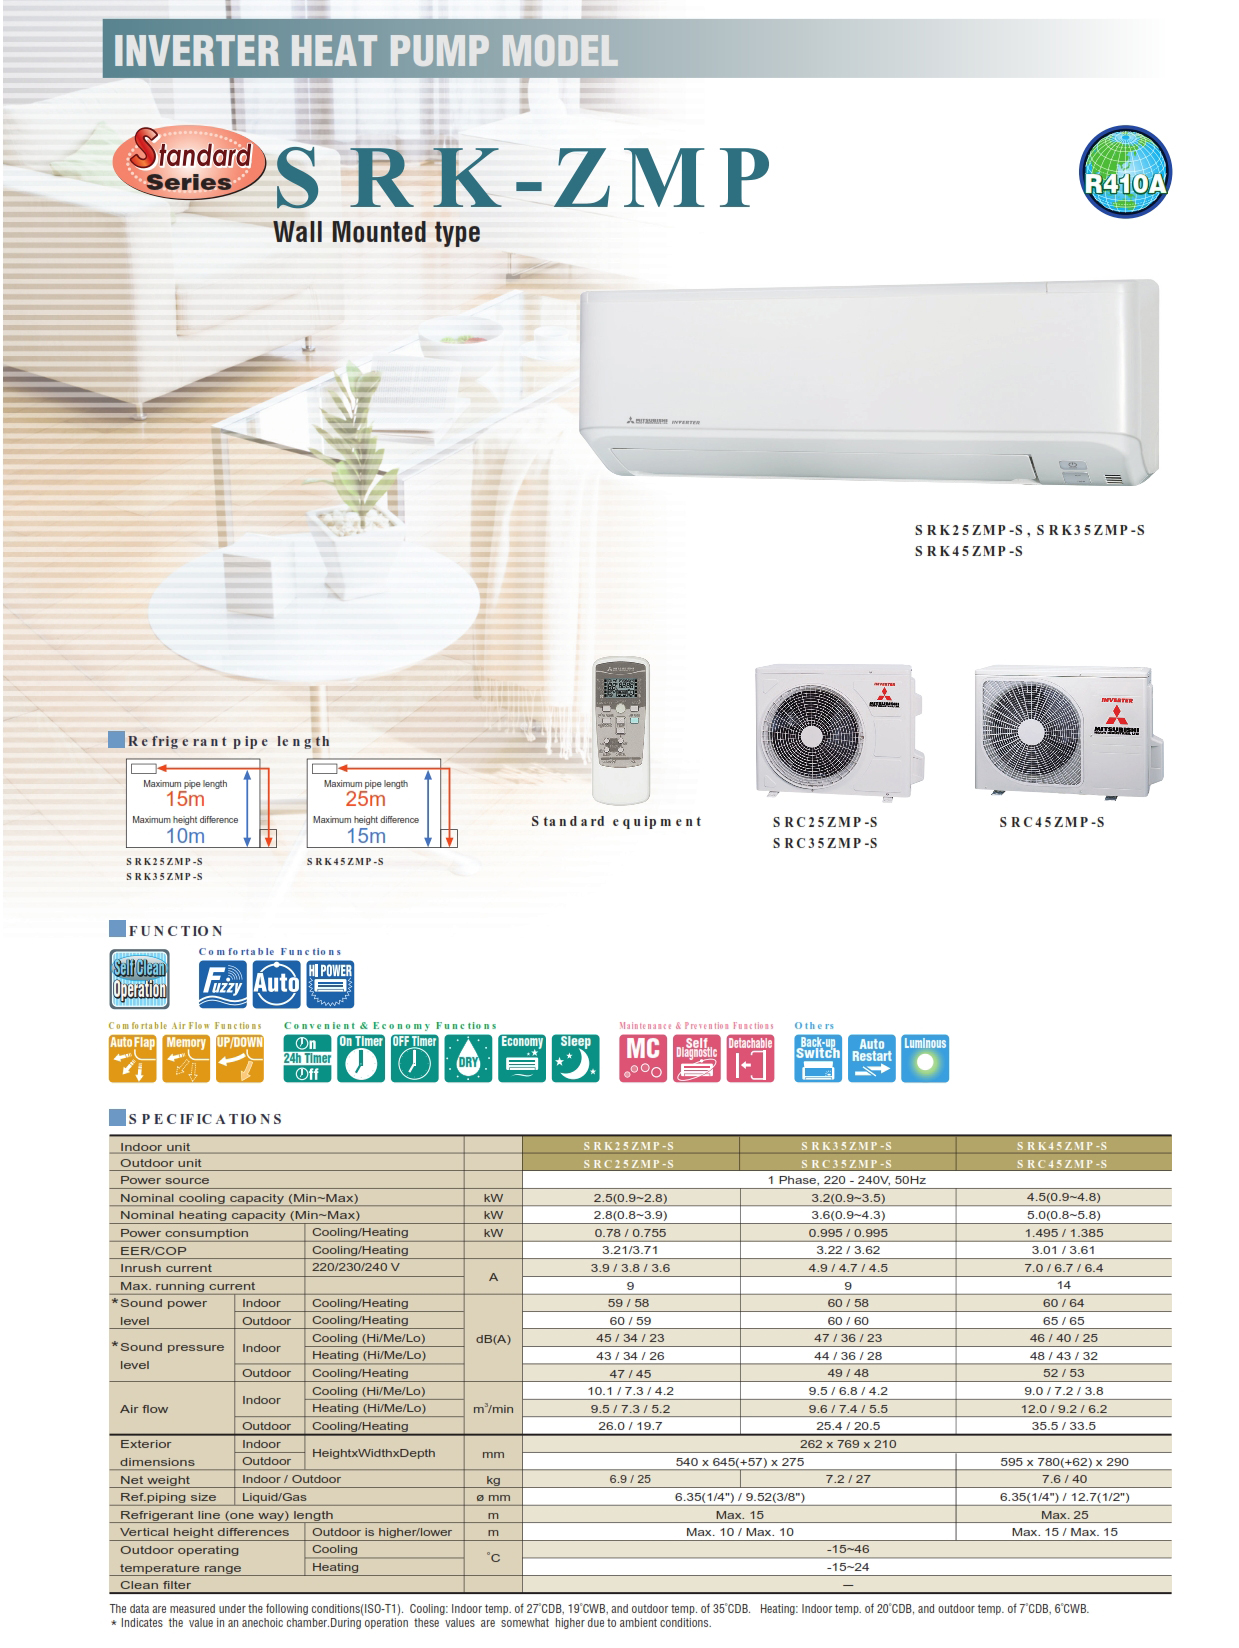 INVERTER HEAT PUMP MODEL SRK-ZMP Wall Mounted type